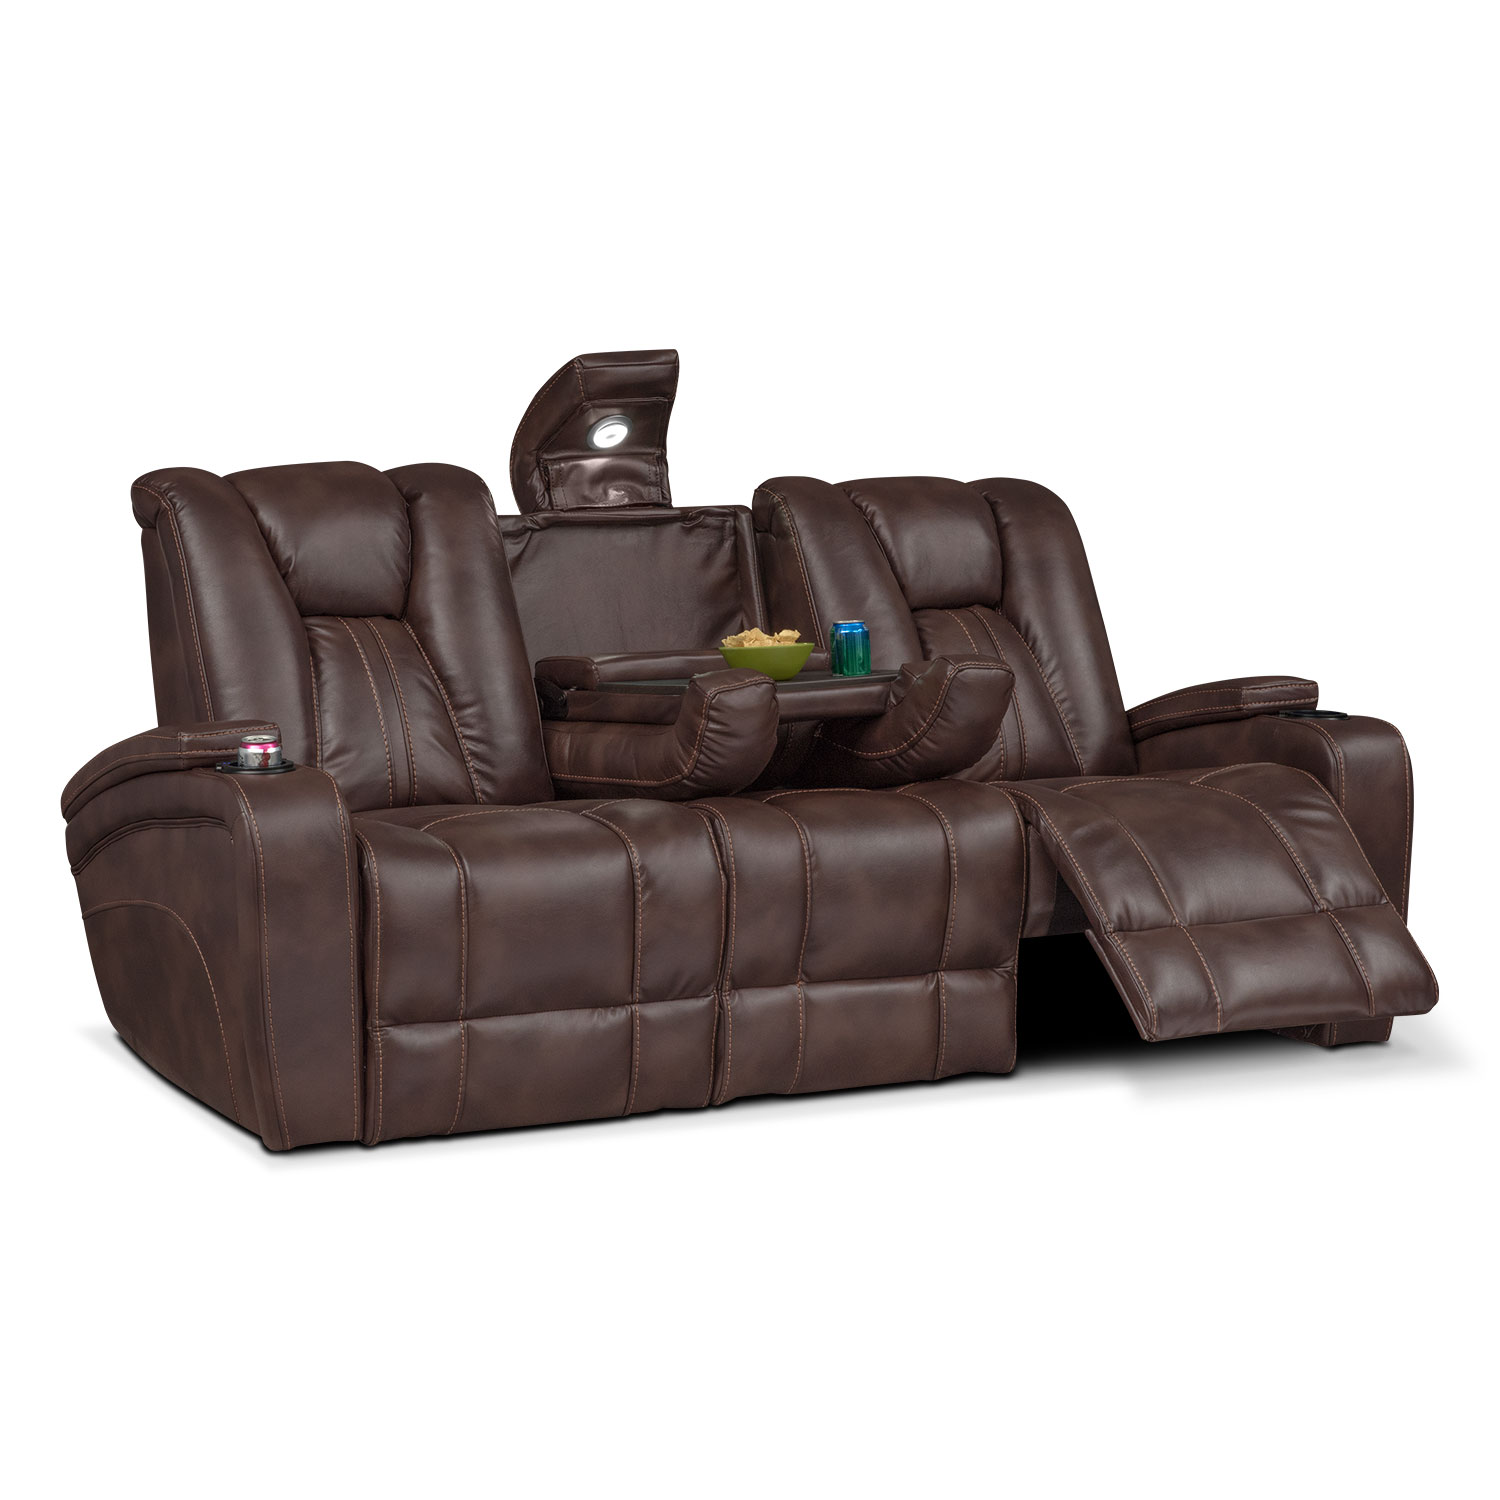 Pulsar Dual Power Reclining Sofa Brown